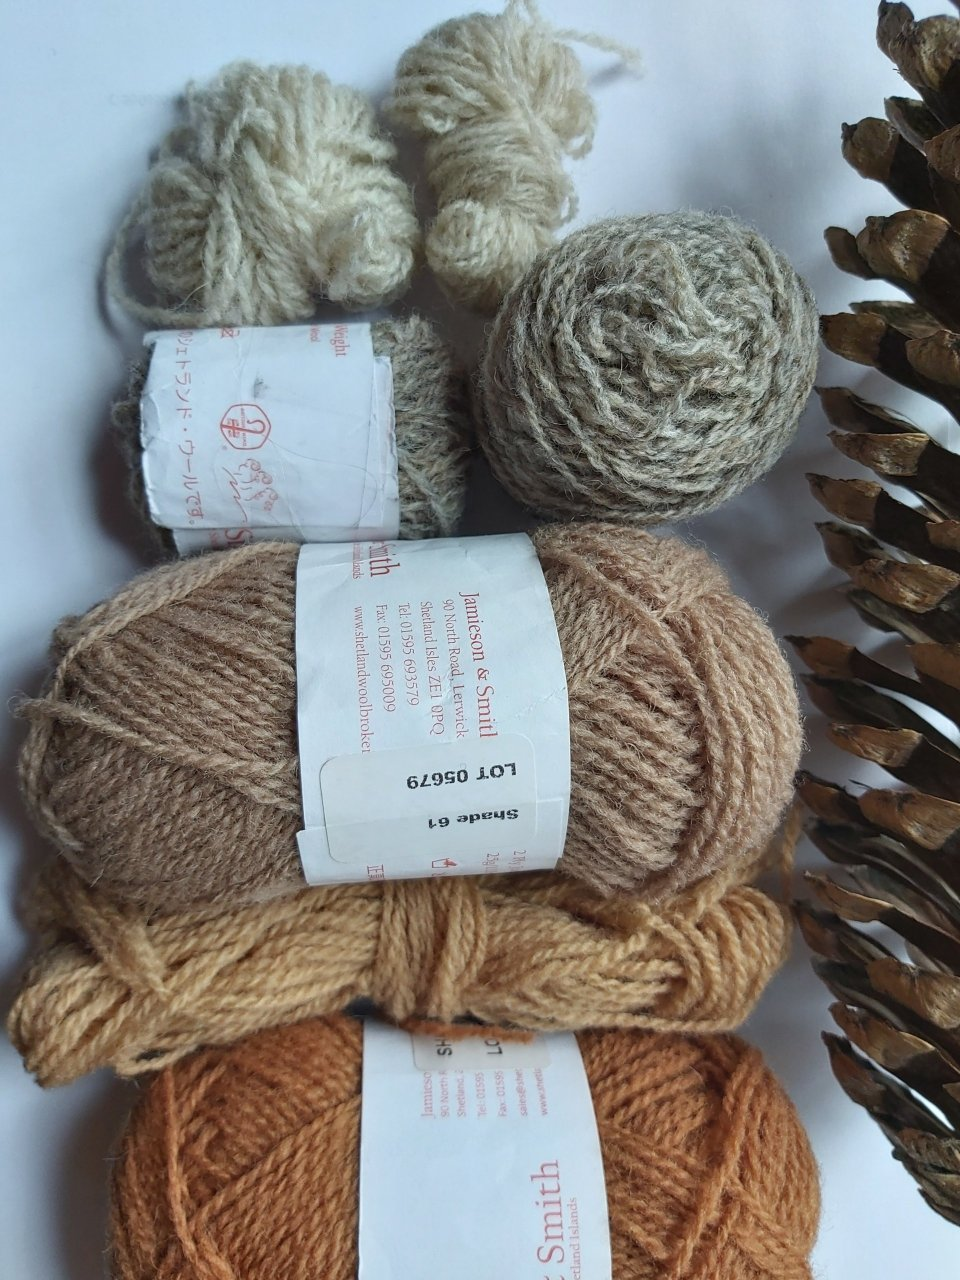 Pinecone pictured beside paler shades of yarn sequenced from top to bottom, 202, 2, 61, FC45 and 32